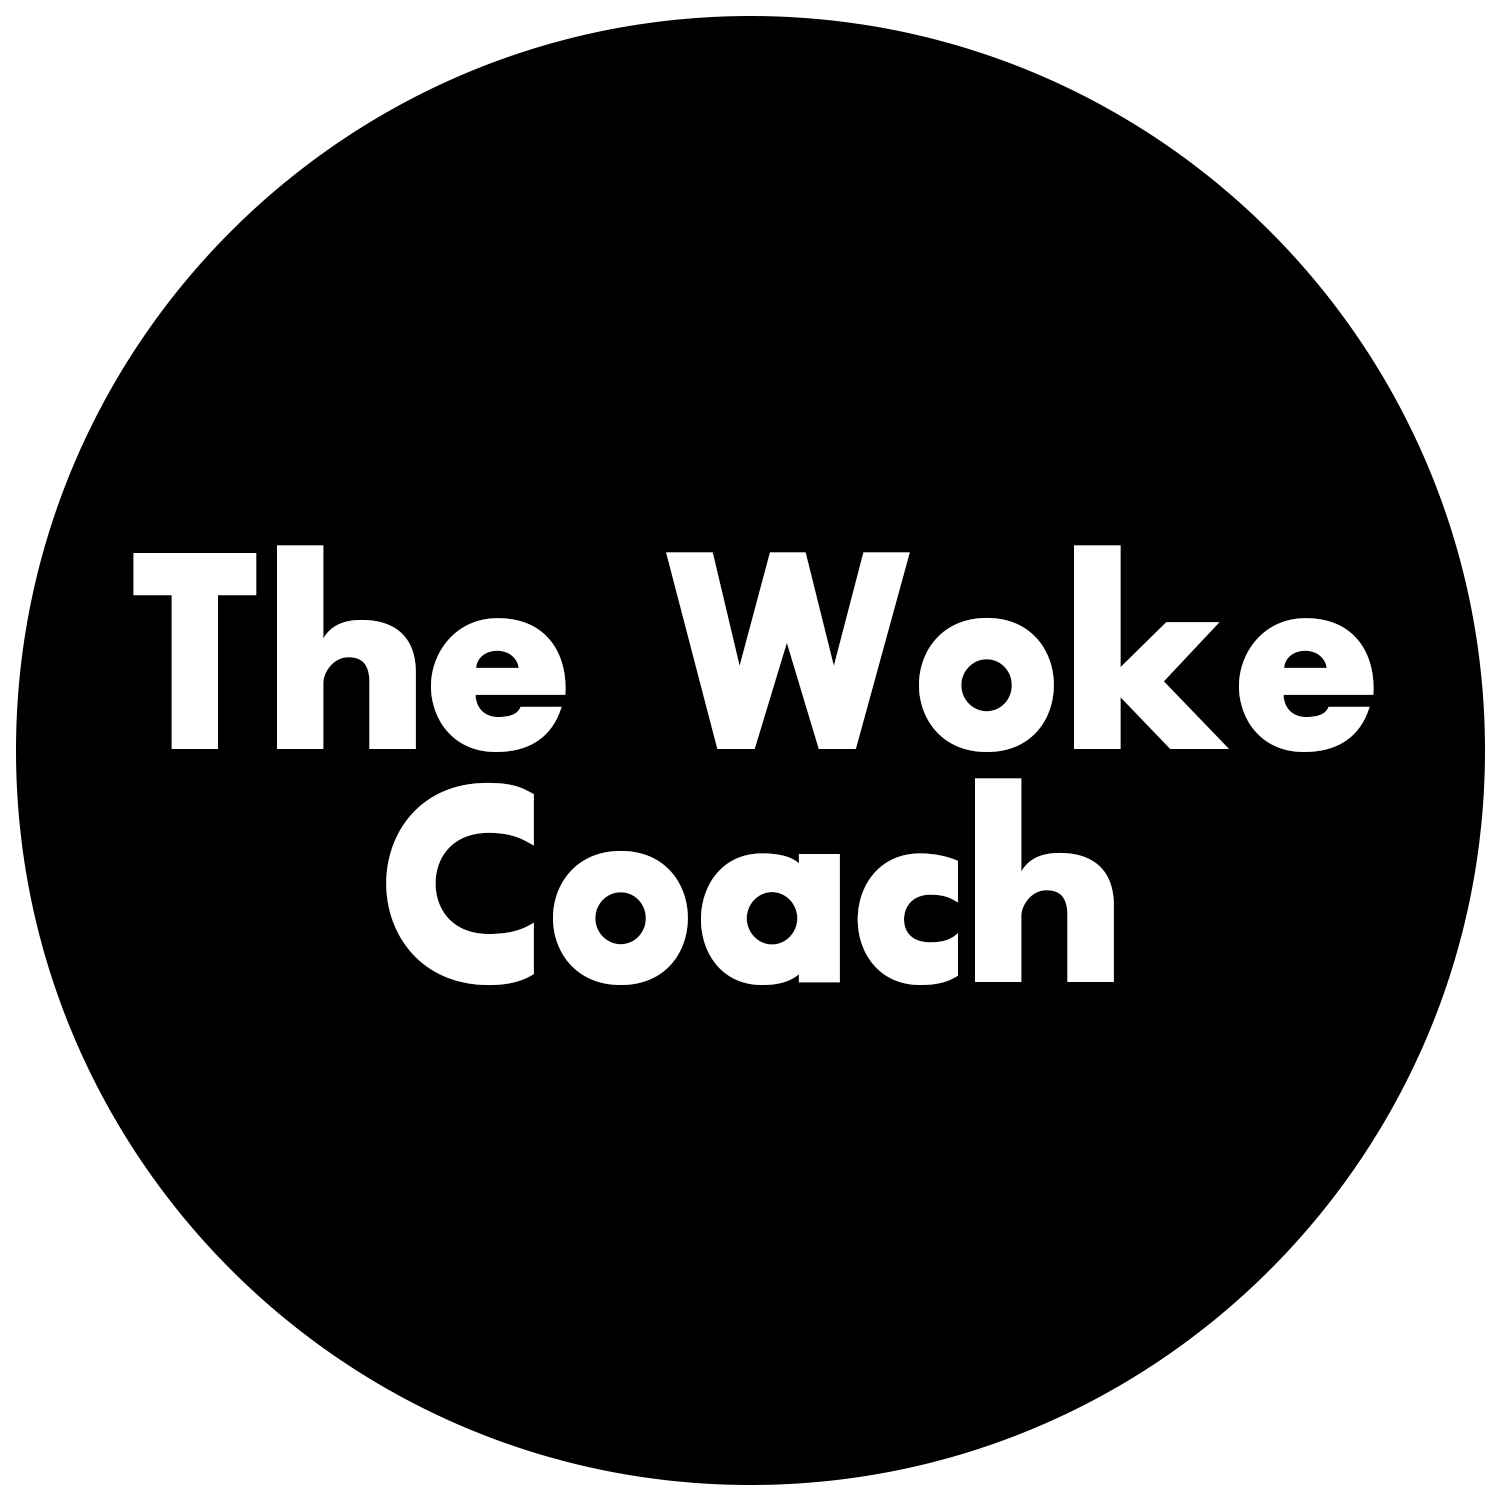 The Woke Coach ™